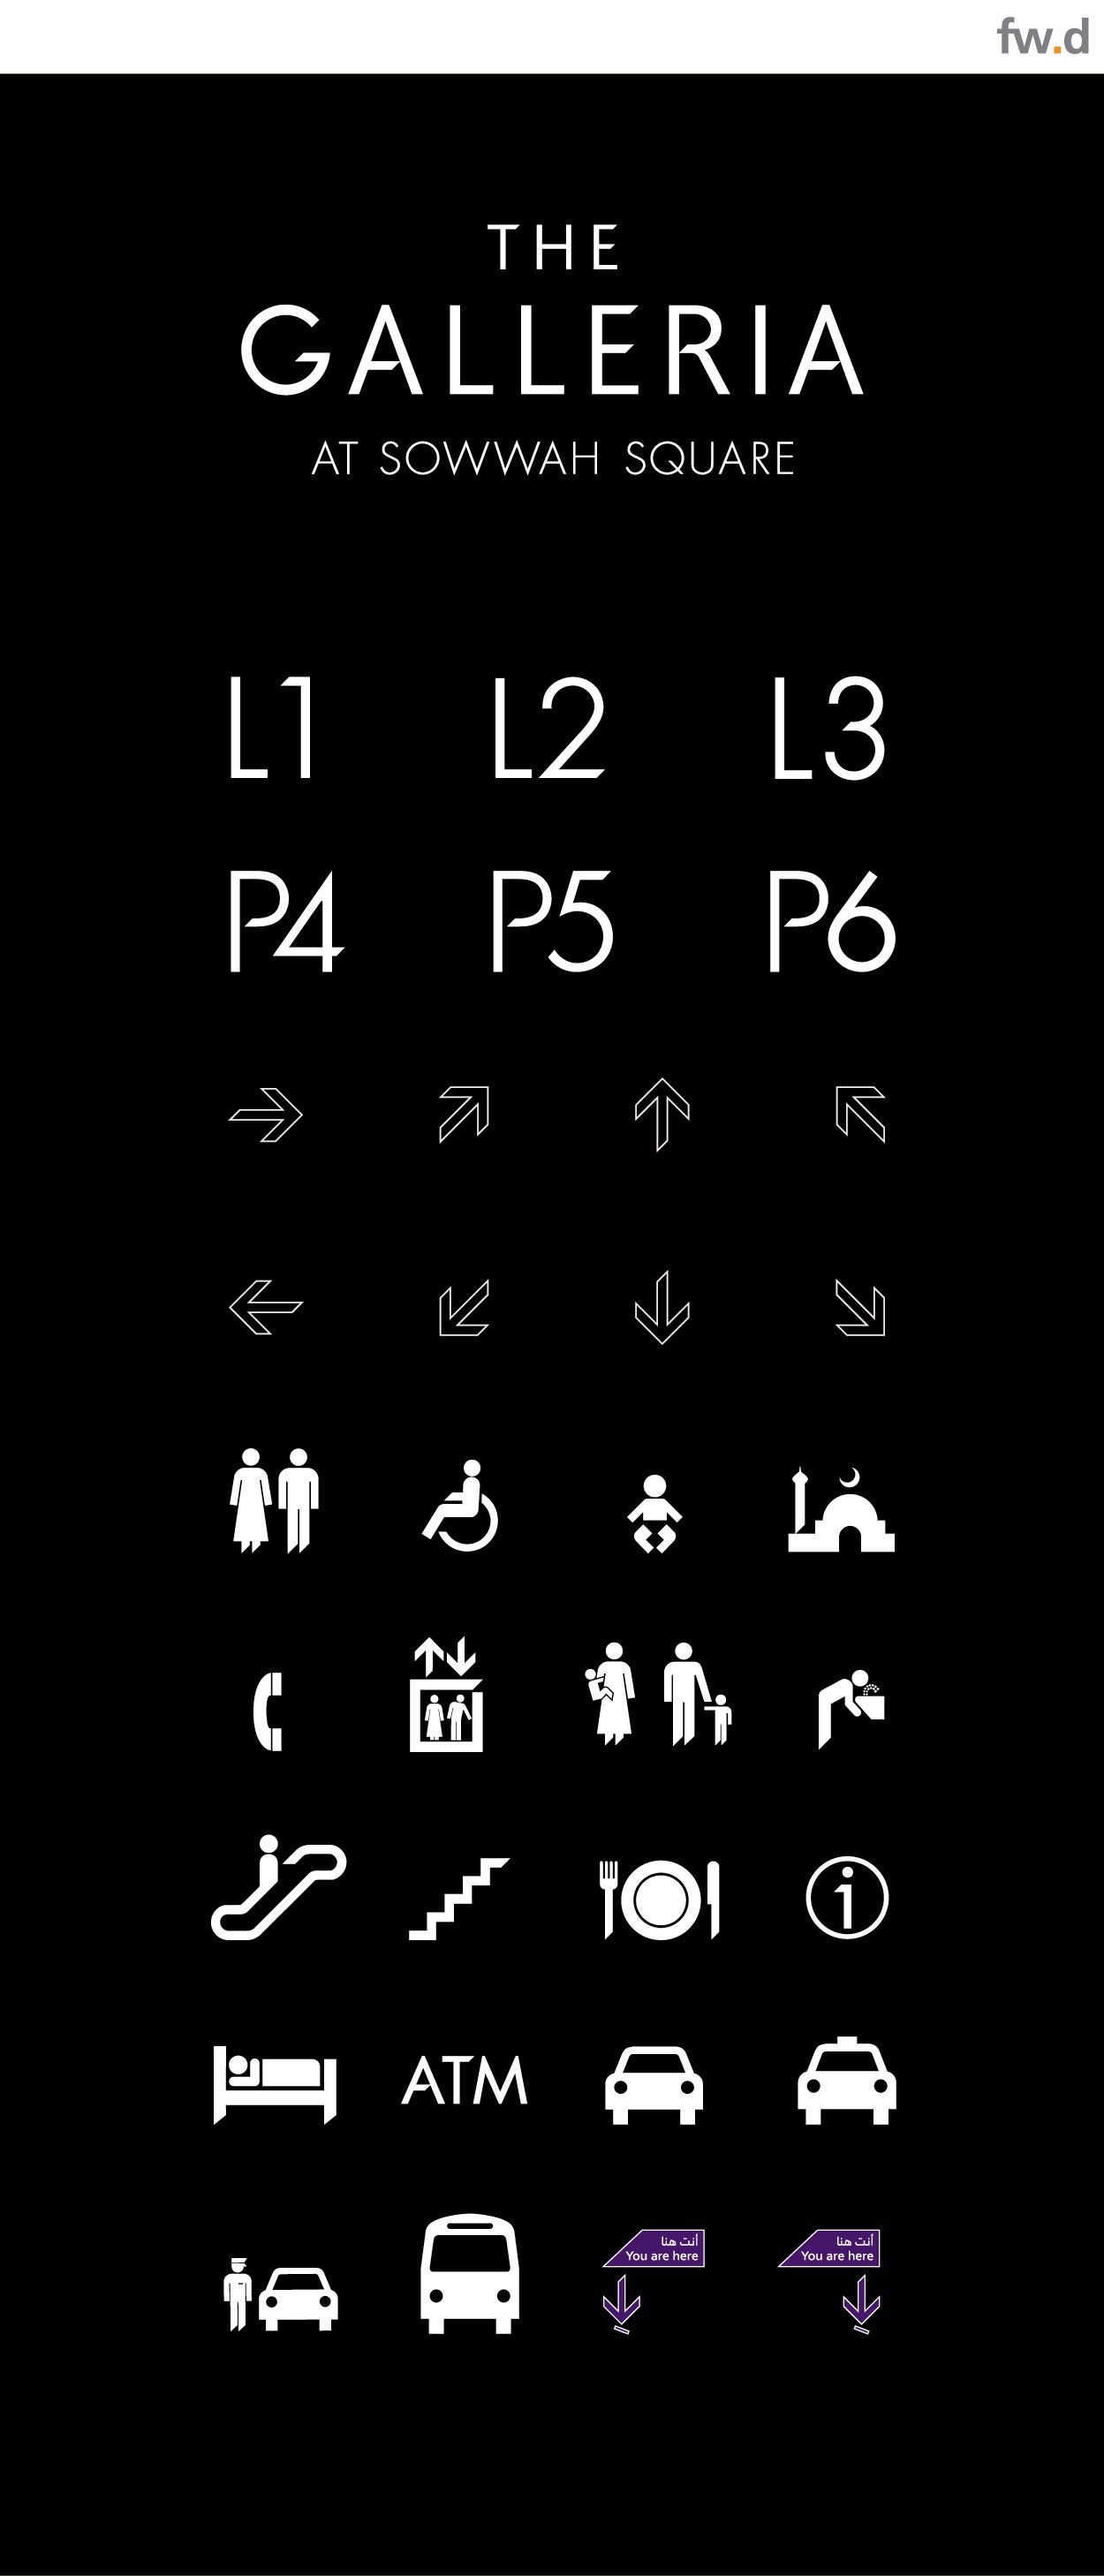 Pictogram set for The Galleria, a luxury mall in Abu Dhabi